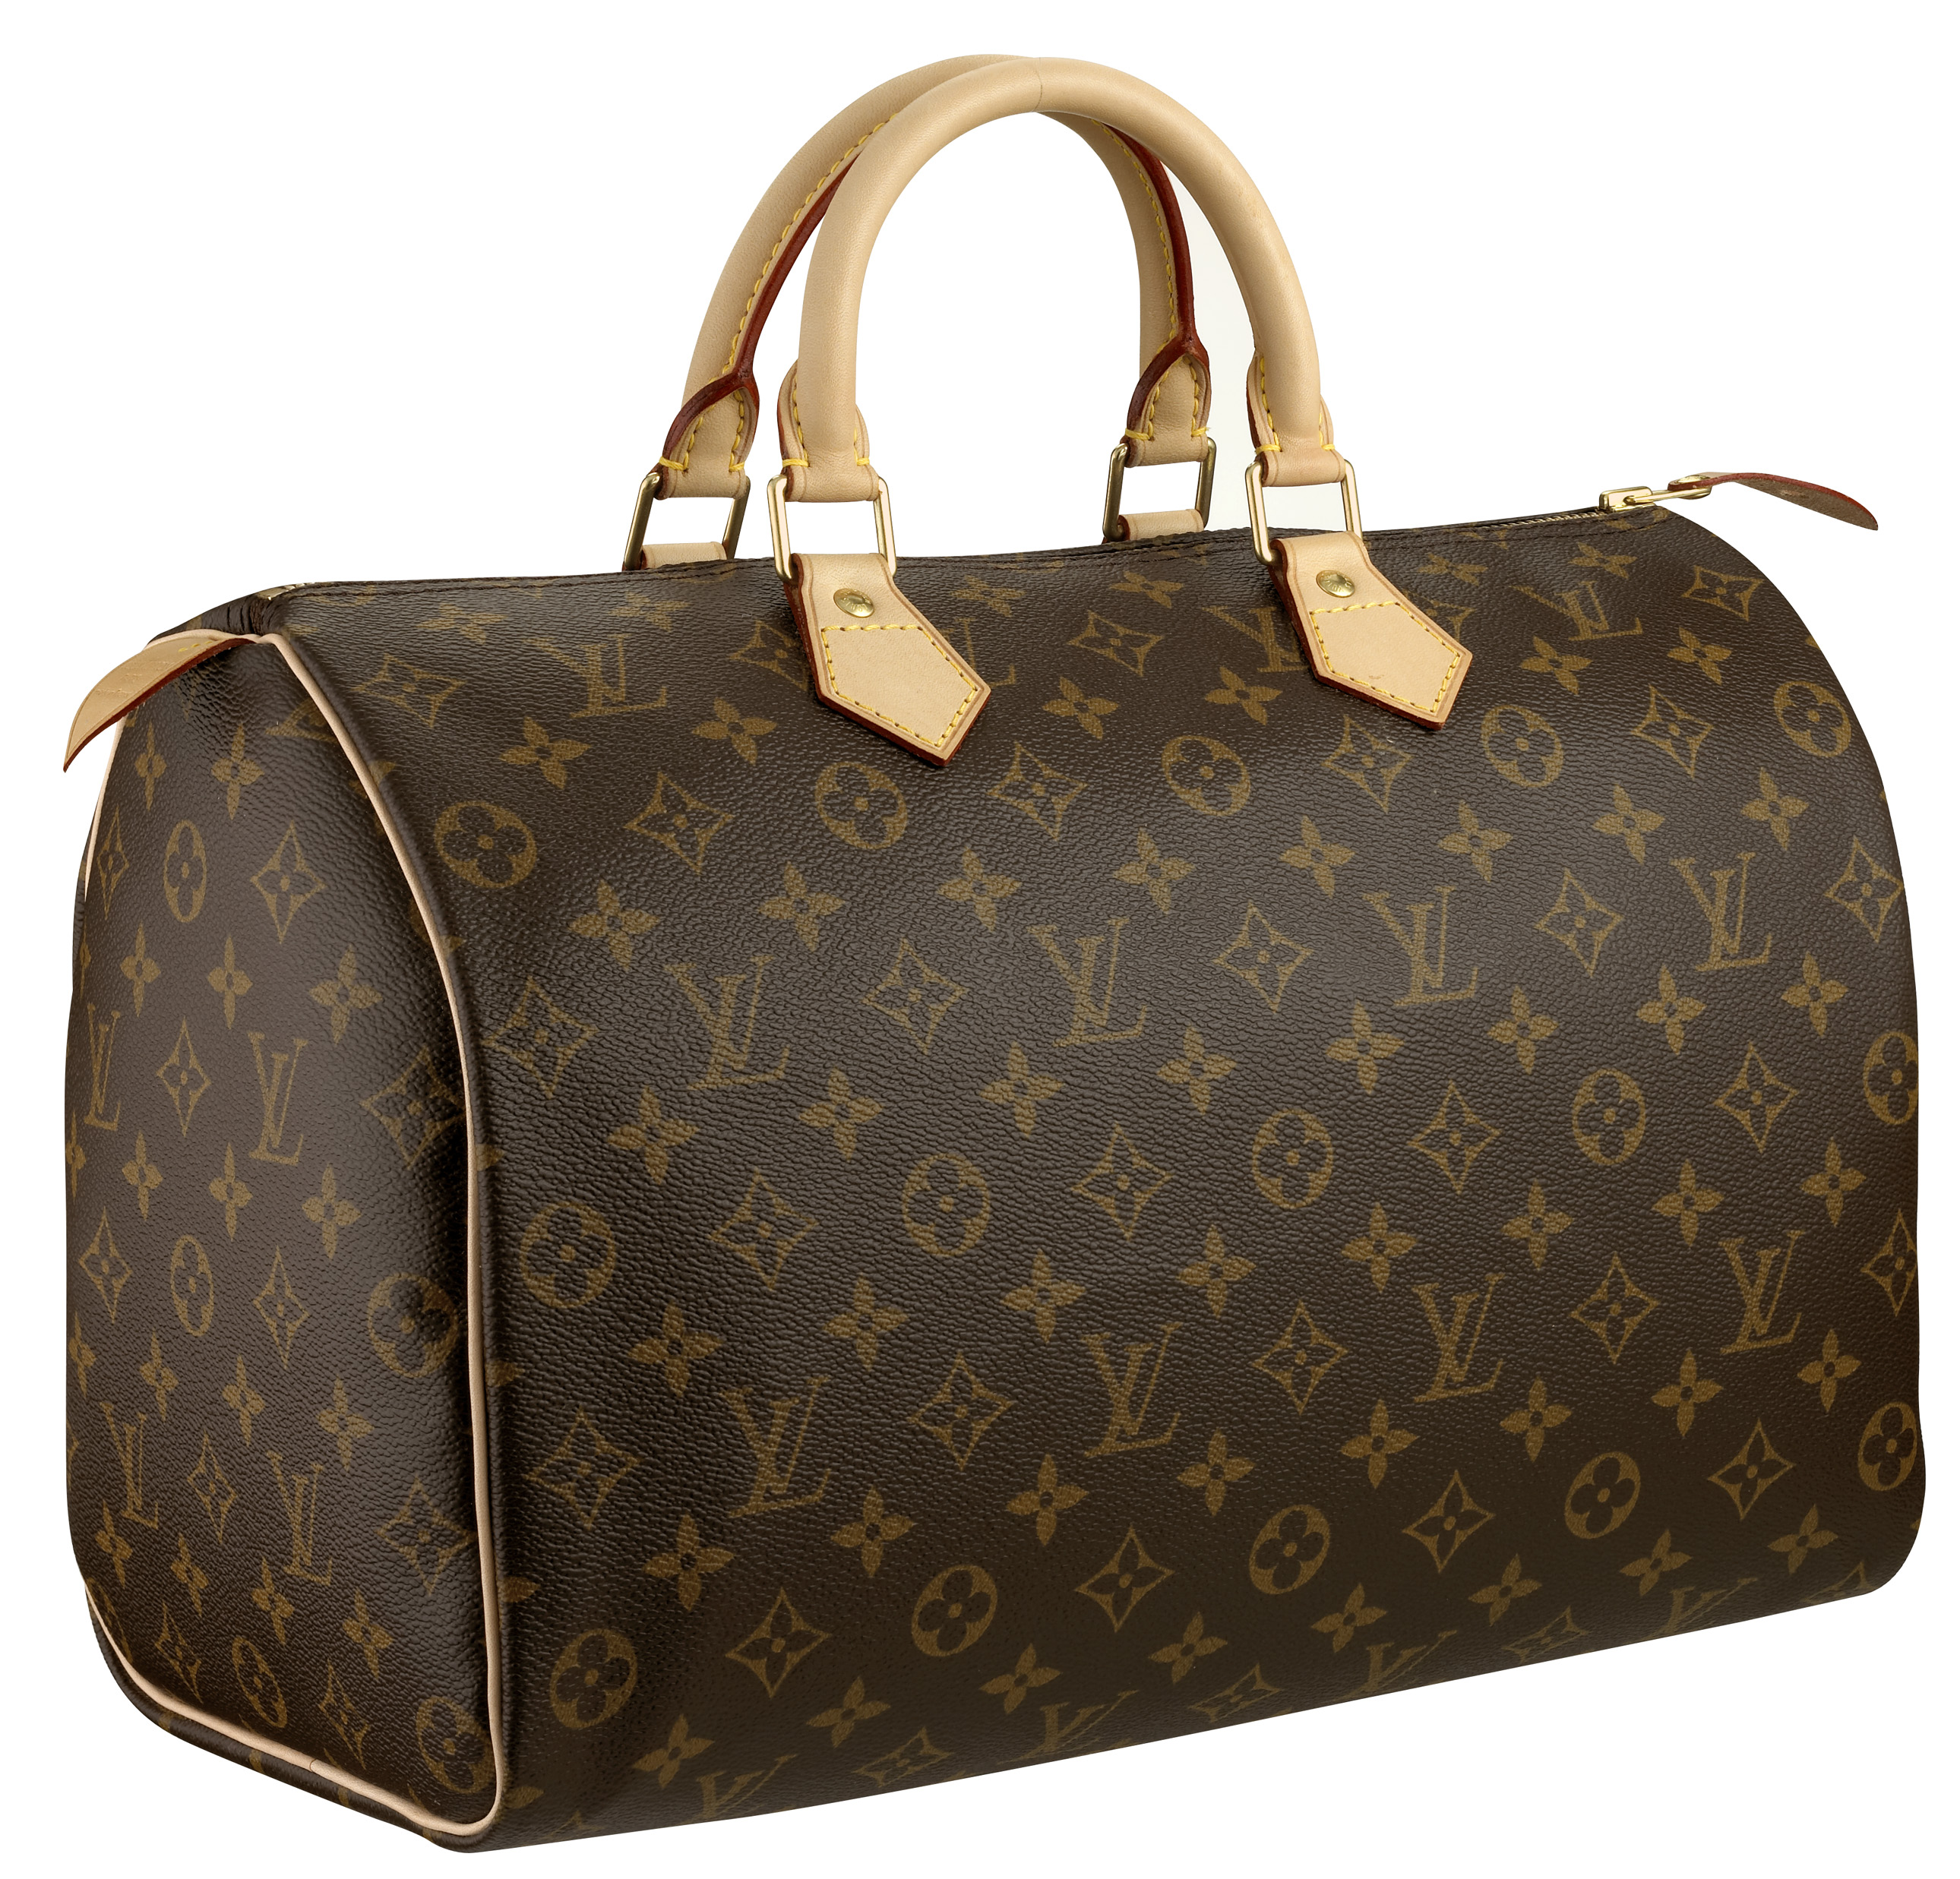 Louis Vuitton Celebrates 150 Years of Excellence in Savoir-Faire